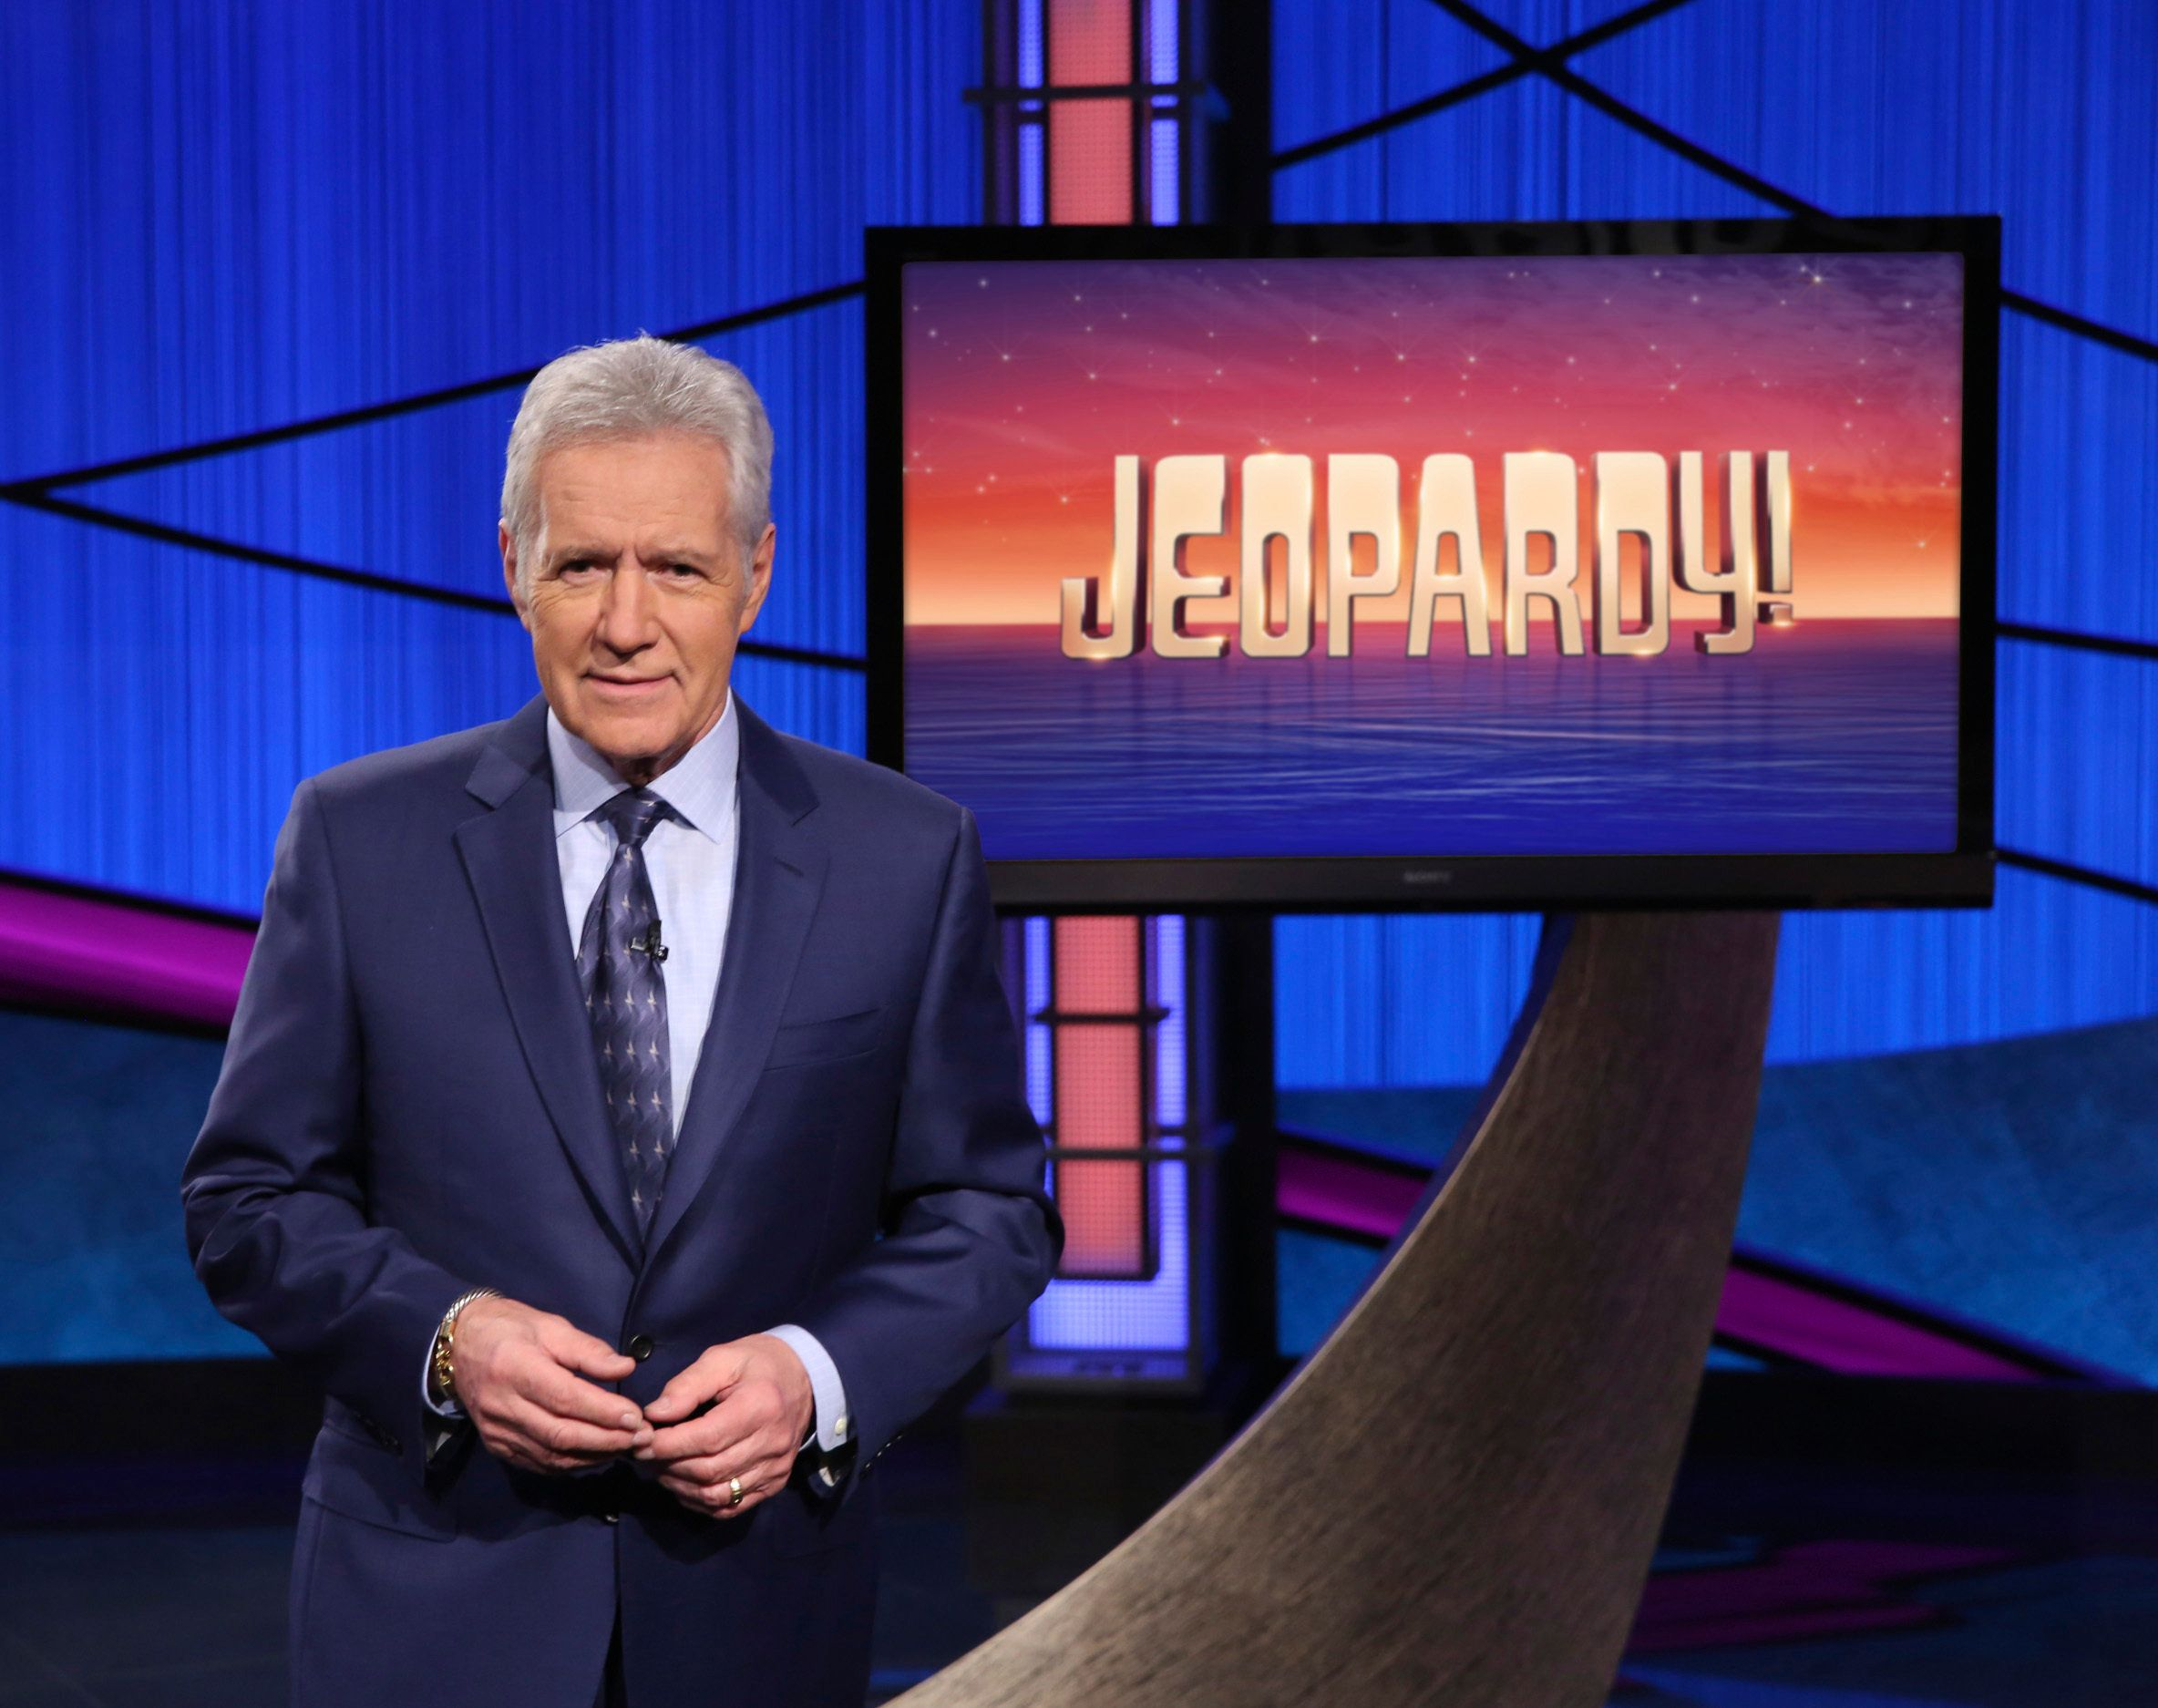 Wheel of Fortune and Jeopardy! Resume Production But With Redesigned Sets